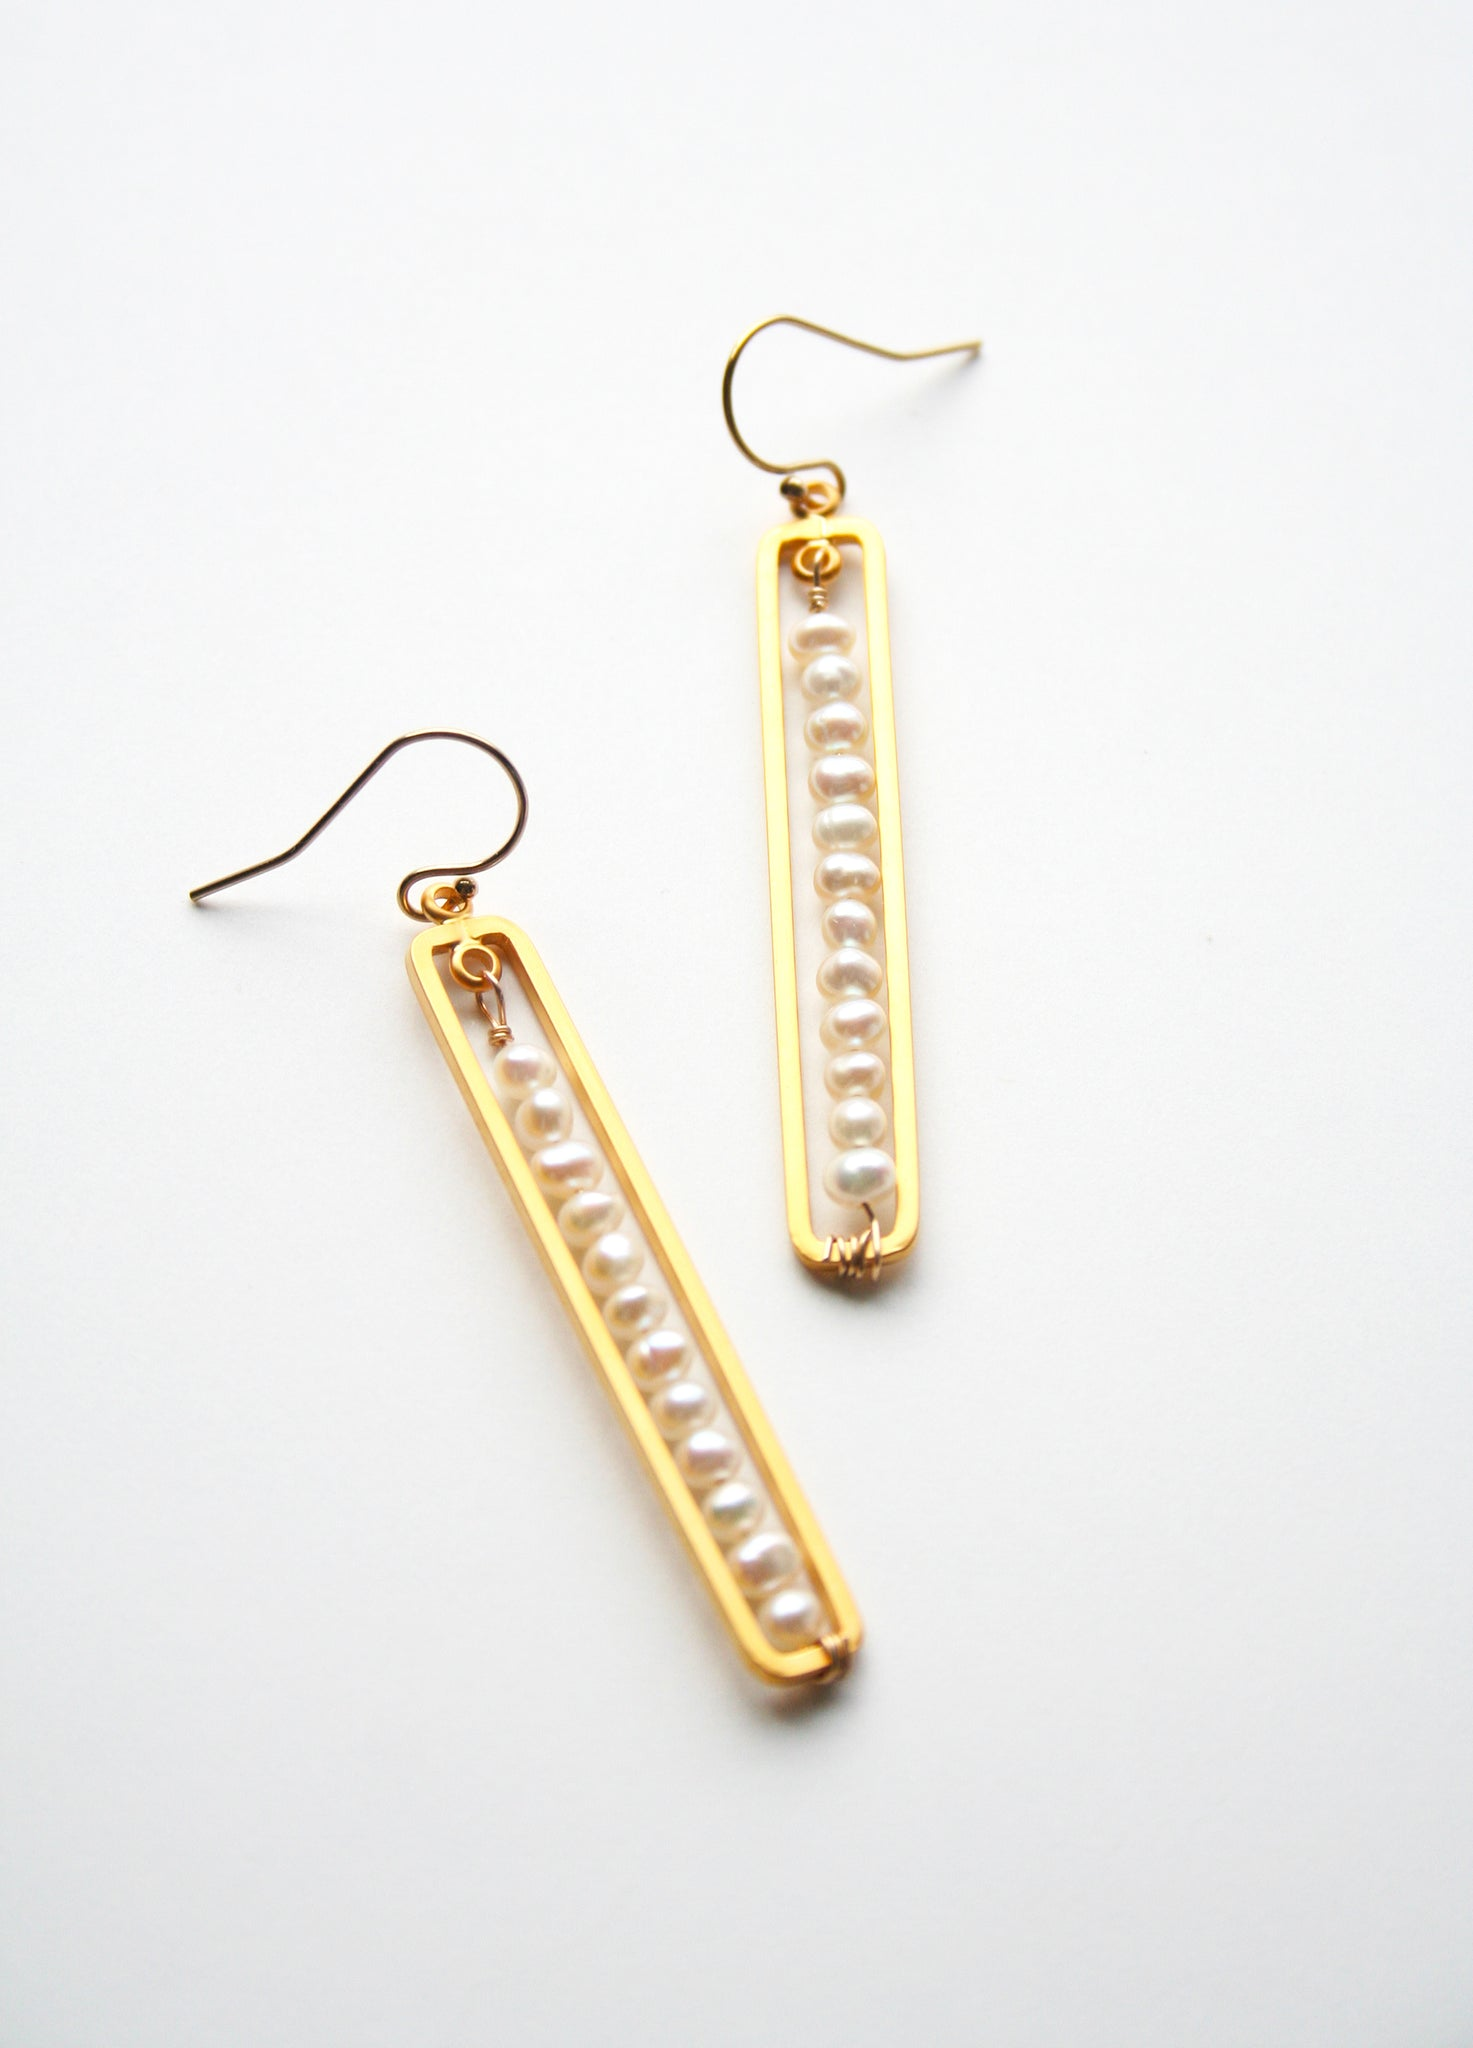 Laura Stark Designs - Pearl Bar Earrings